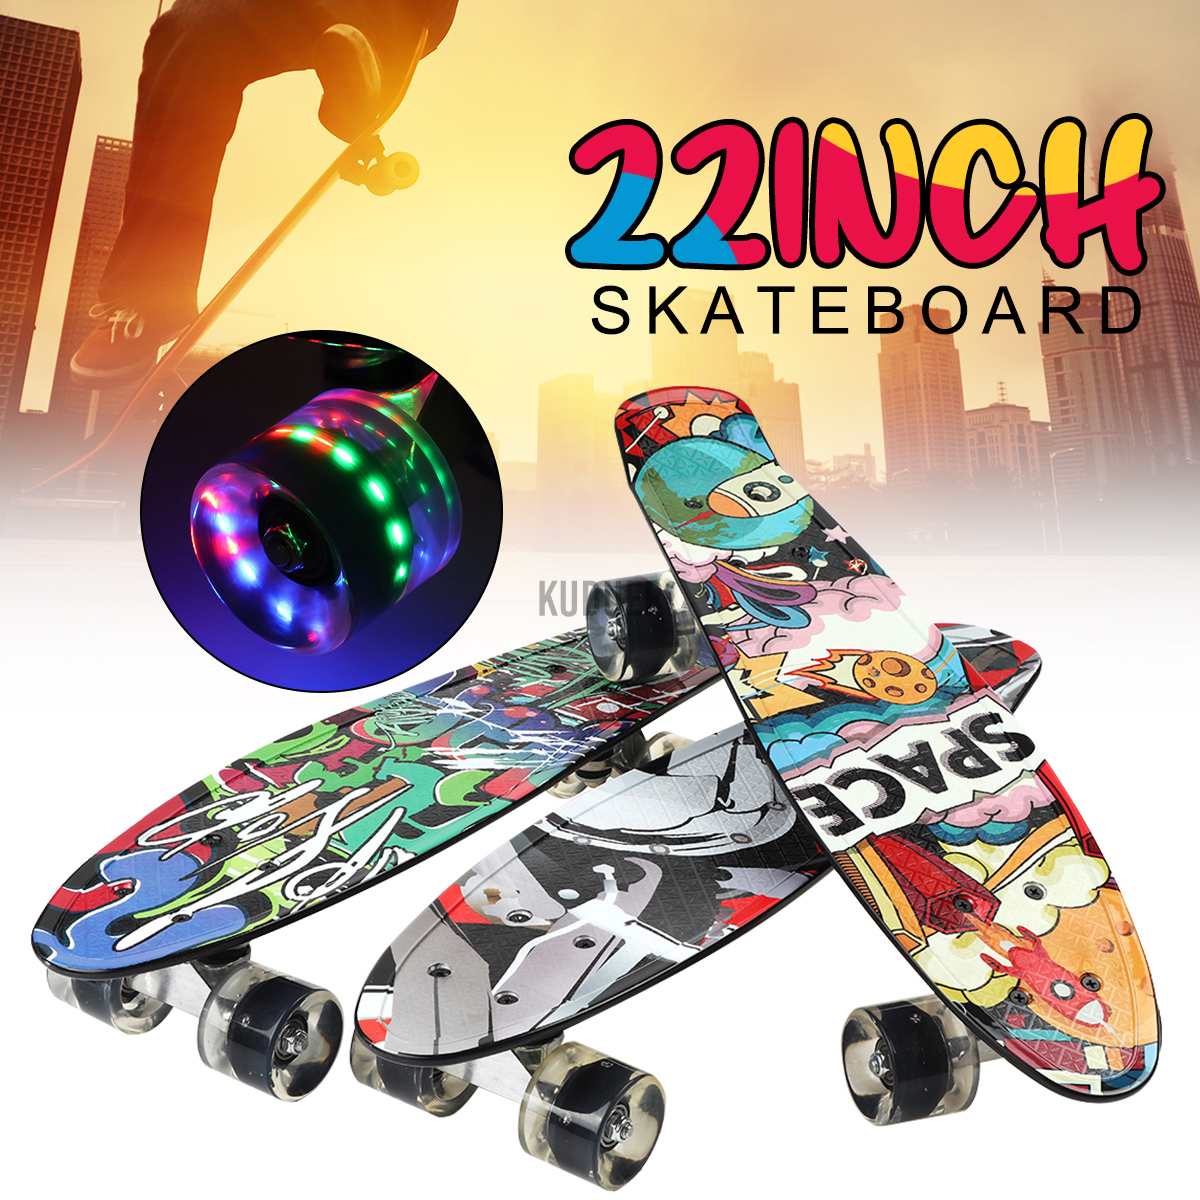 22Inch Unisex Youth Wheel Portable Skateboard outdoor play